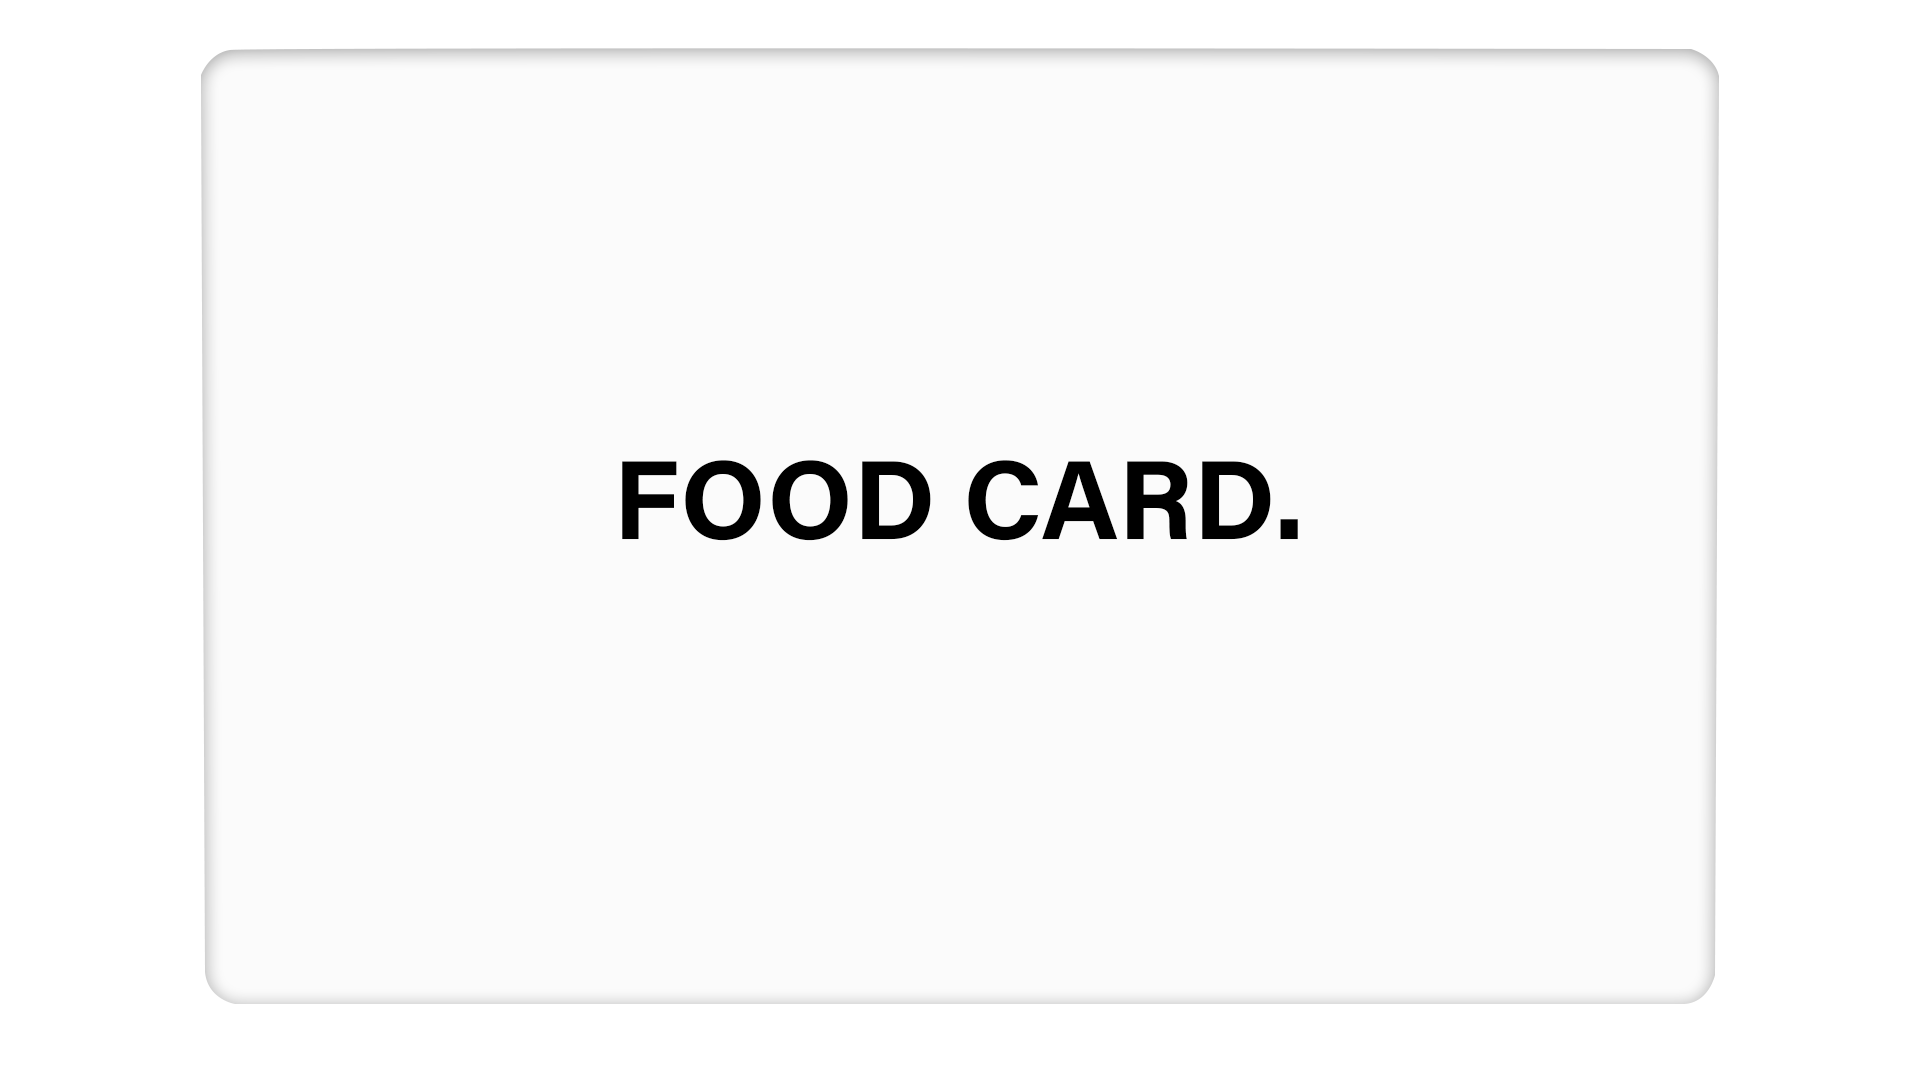 Food Card - Passticker